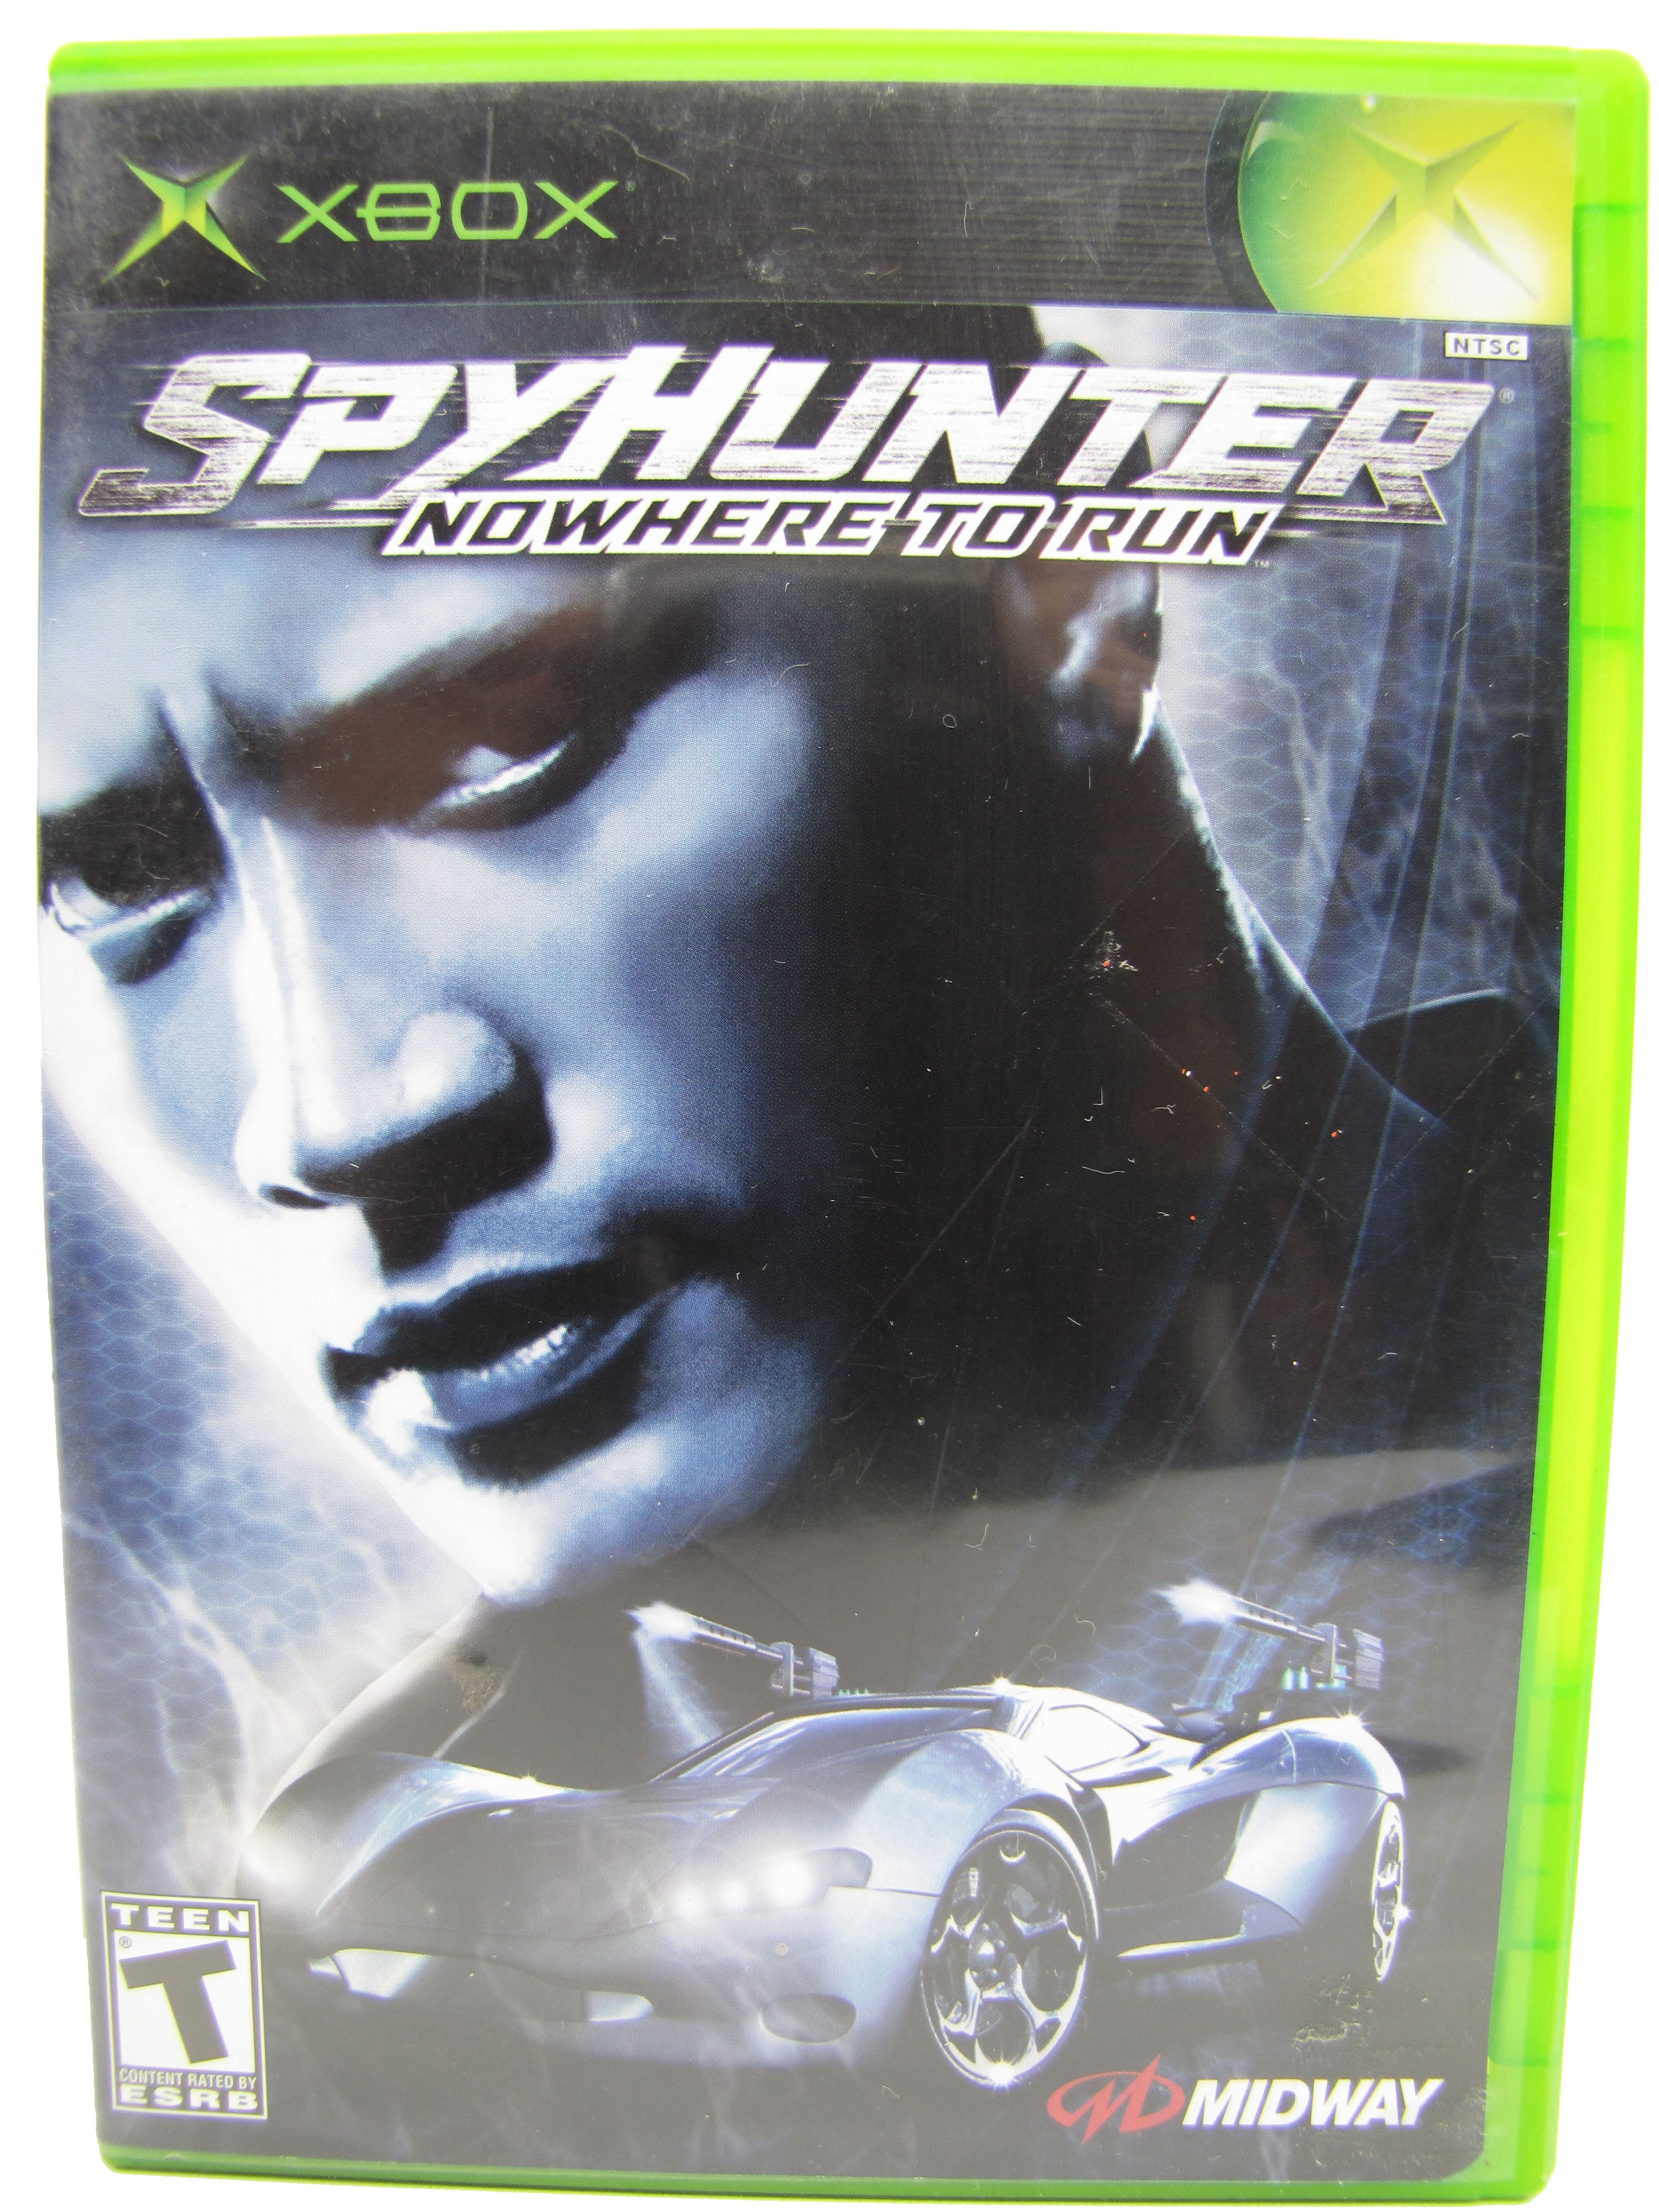 XBOX Spy Hunter: Nowhere to Run Complete - 2006